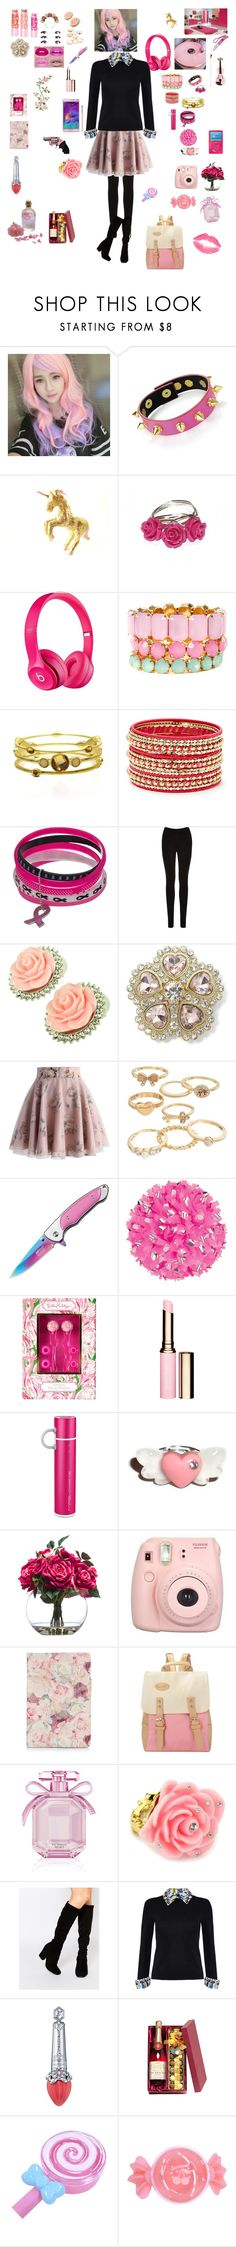 """""""my friend lolita-sarif    """" by roxiebolden ❤ liked on Polyvore featuring Clair Beauty, Swesky, Apple, Pink Mascara, Cara Couture, Maybelline, Hunkydory, Oasis, Kate Marie and Monet"""